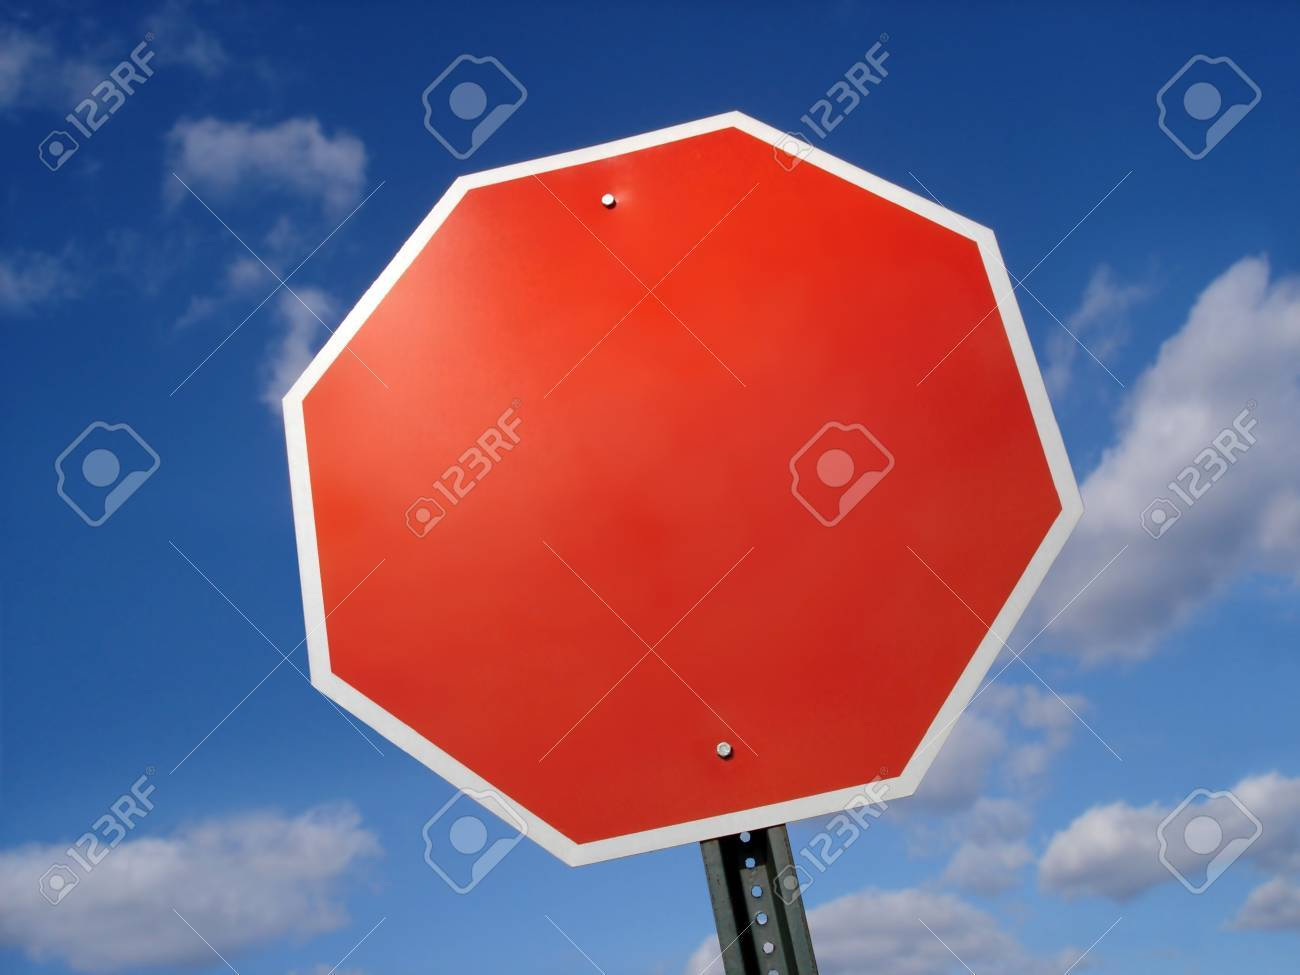 Stop Sign Blank Stock Photo - 3670239